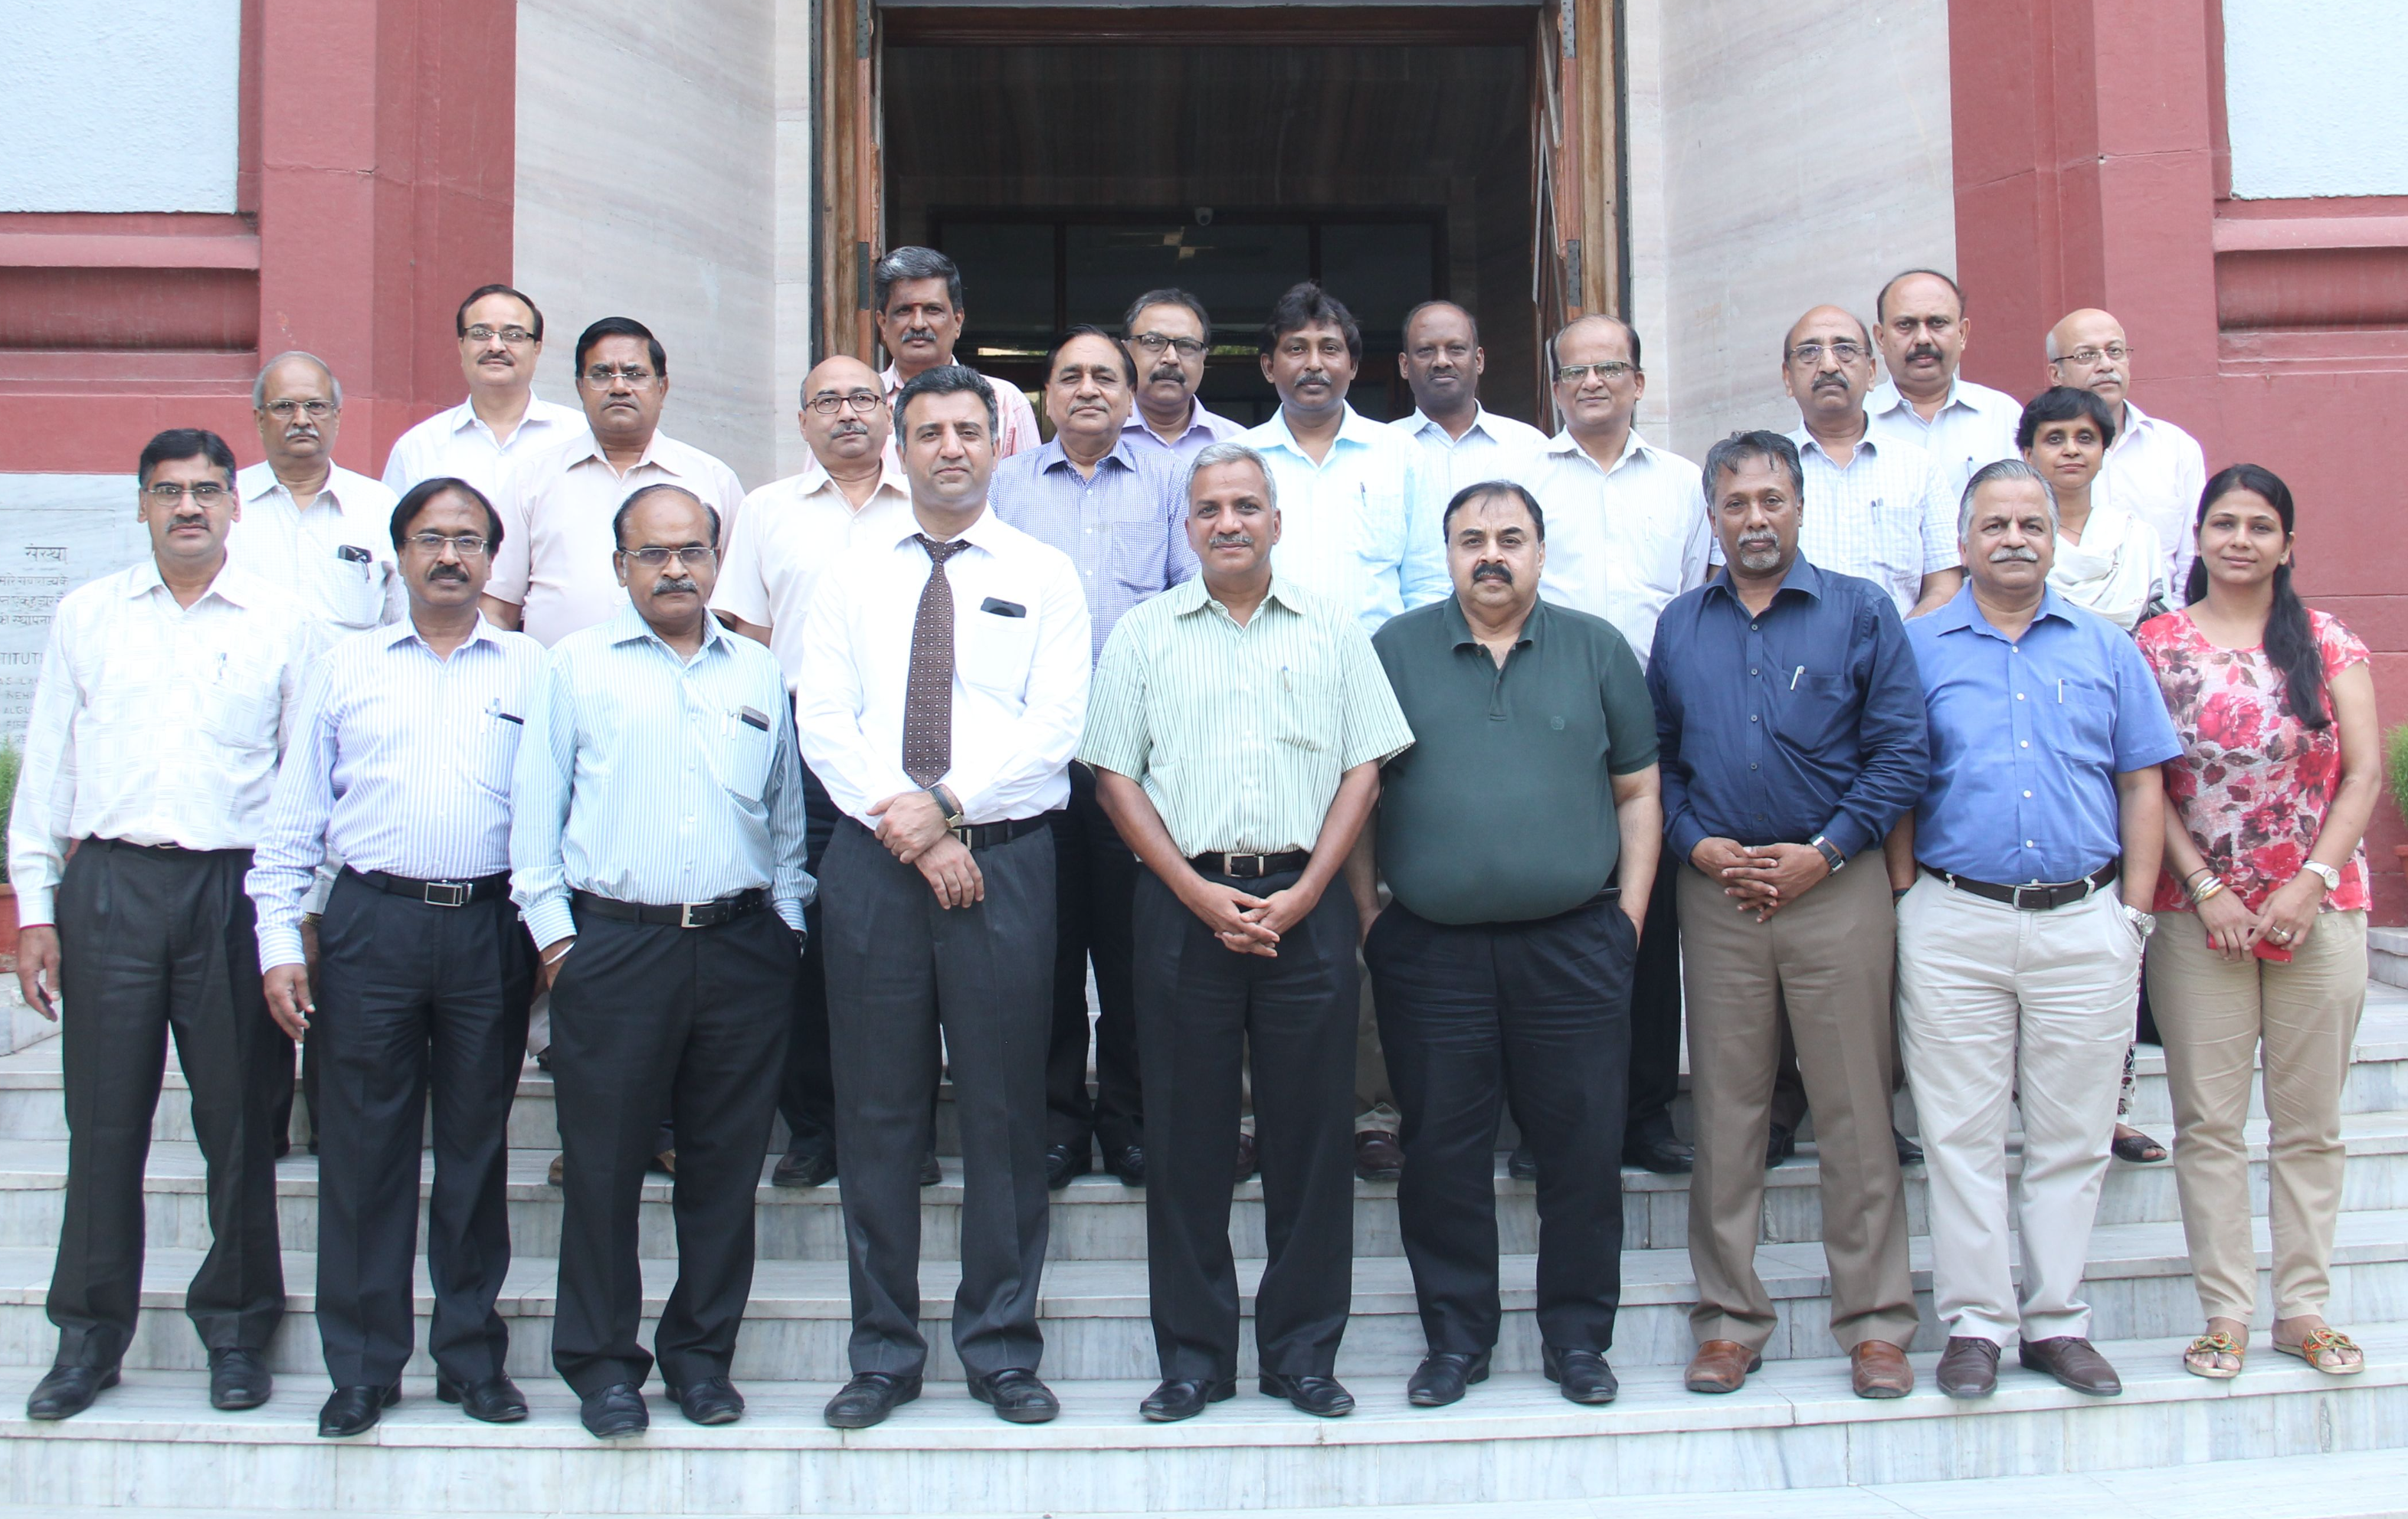 ISO 27001 Requirements built by Principal Auditors and Lead Instructors of ISO 27001